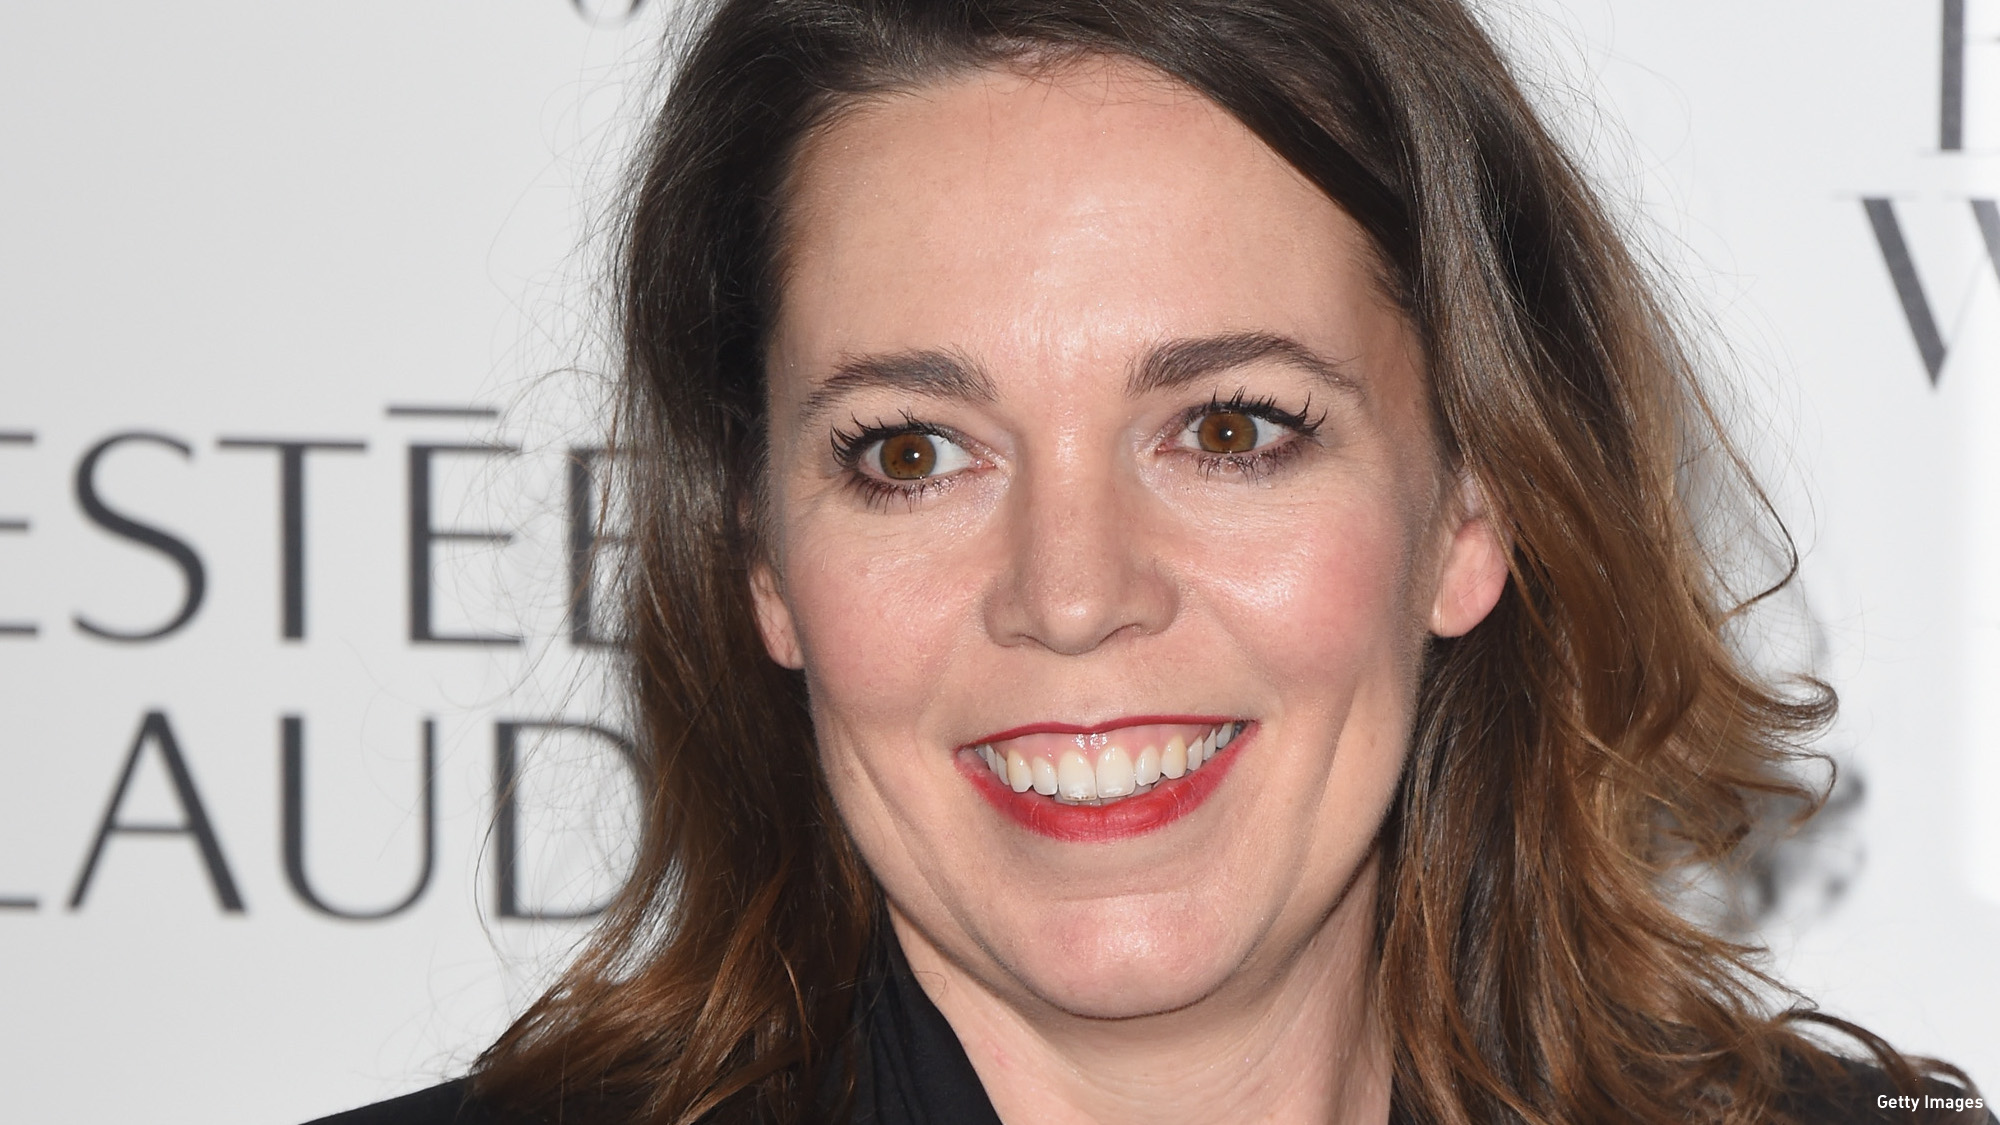 Olivia Colman: Olivia Colman Is Taking Over For Claire Foy In 'The Crown